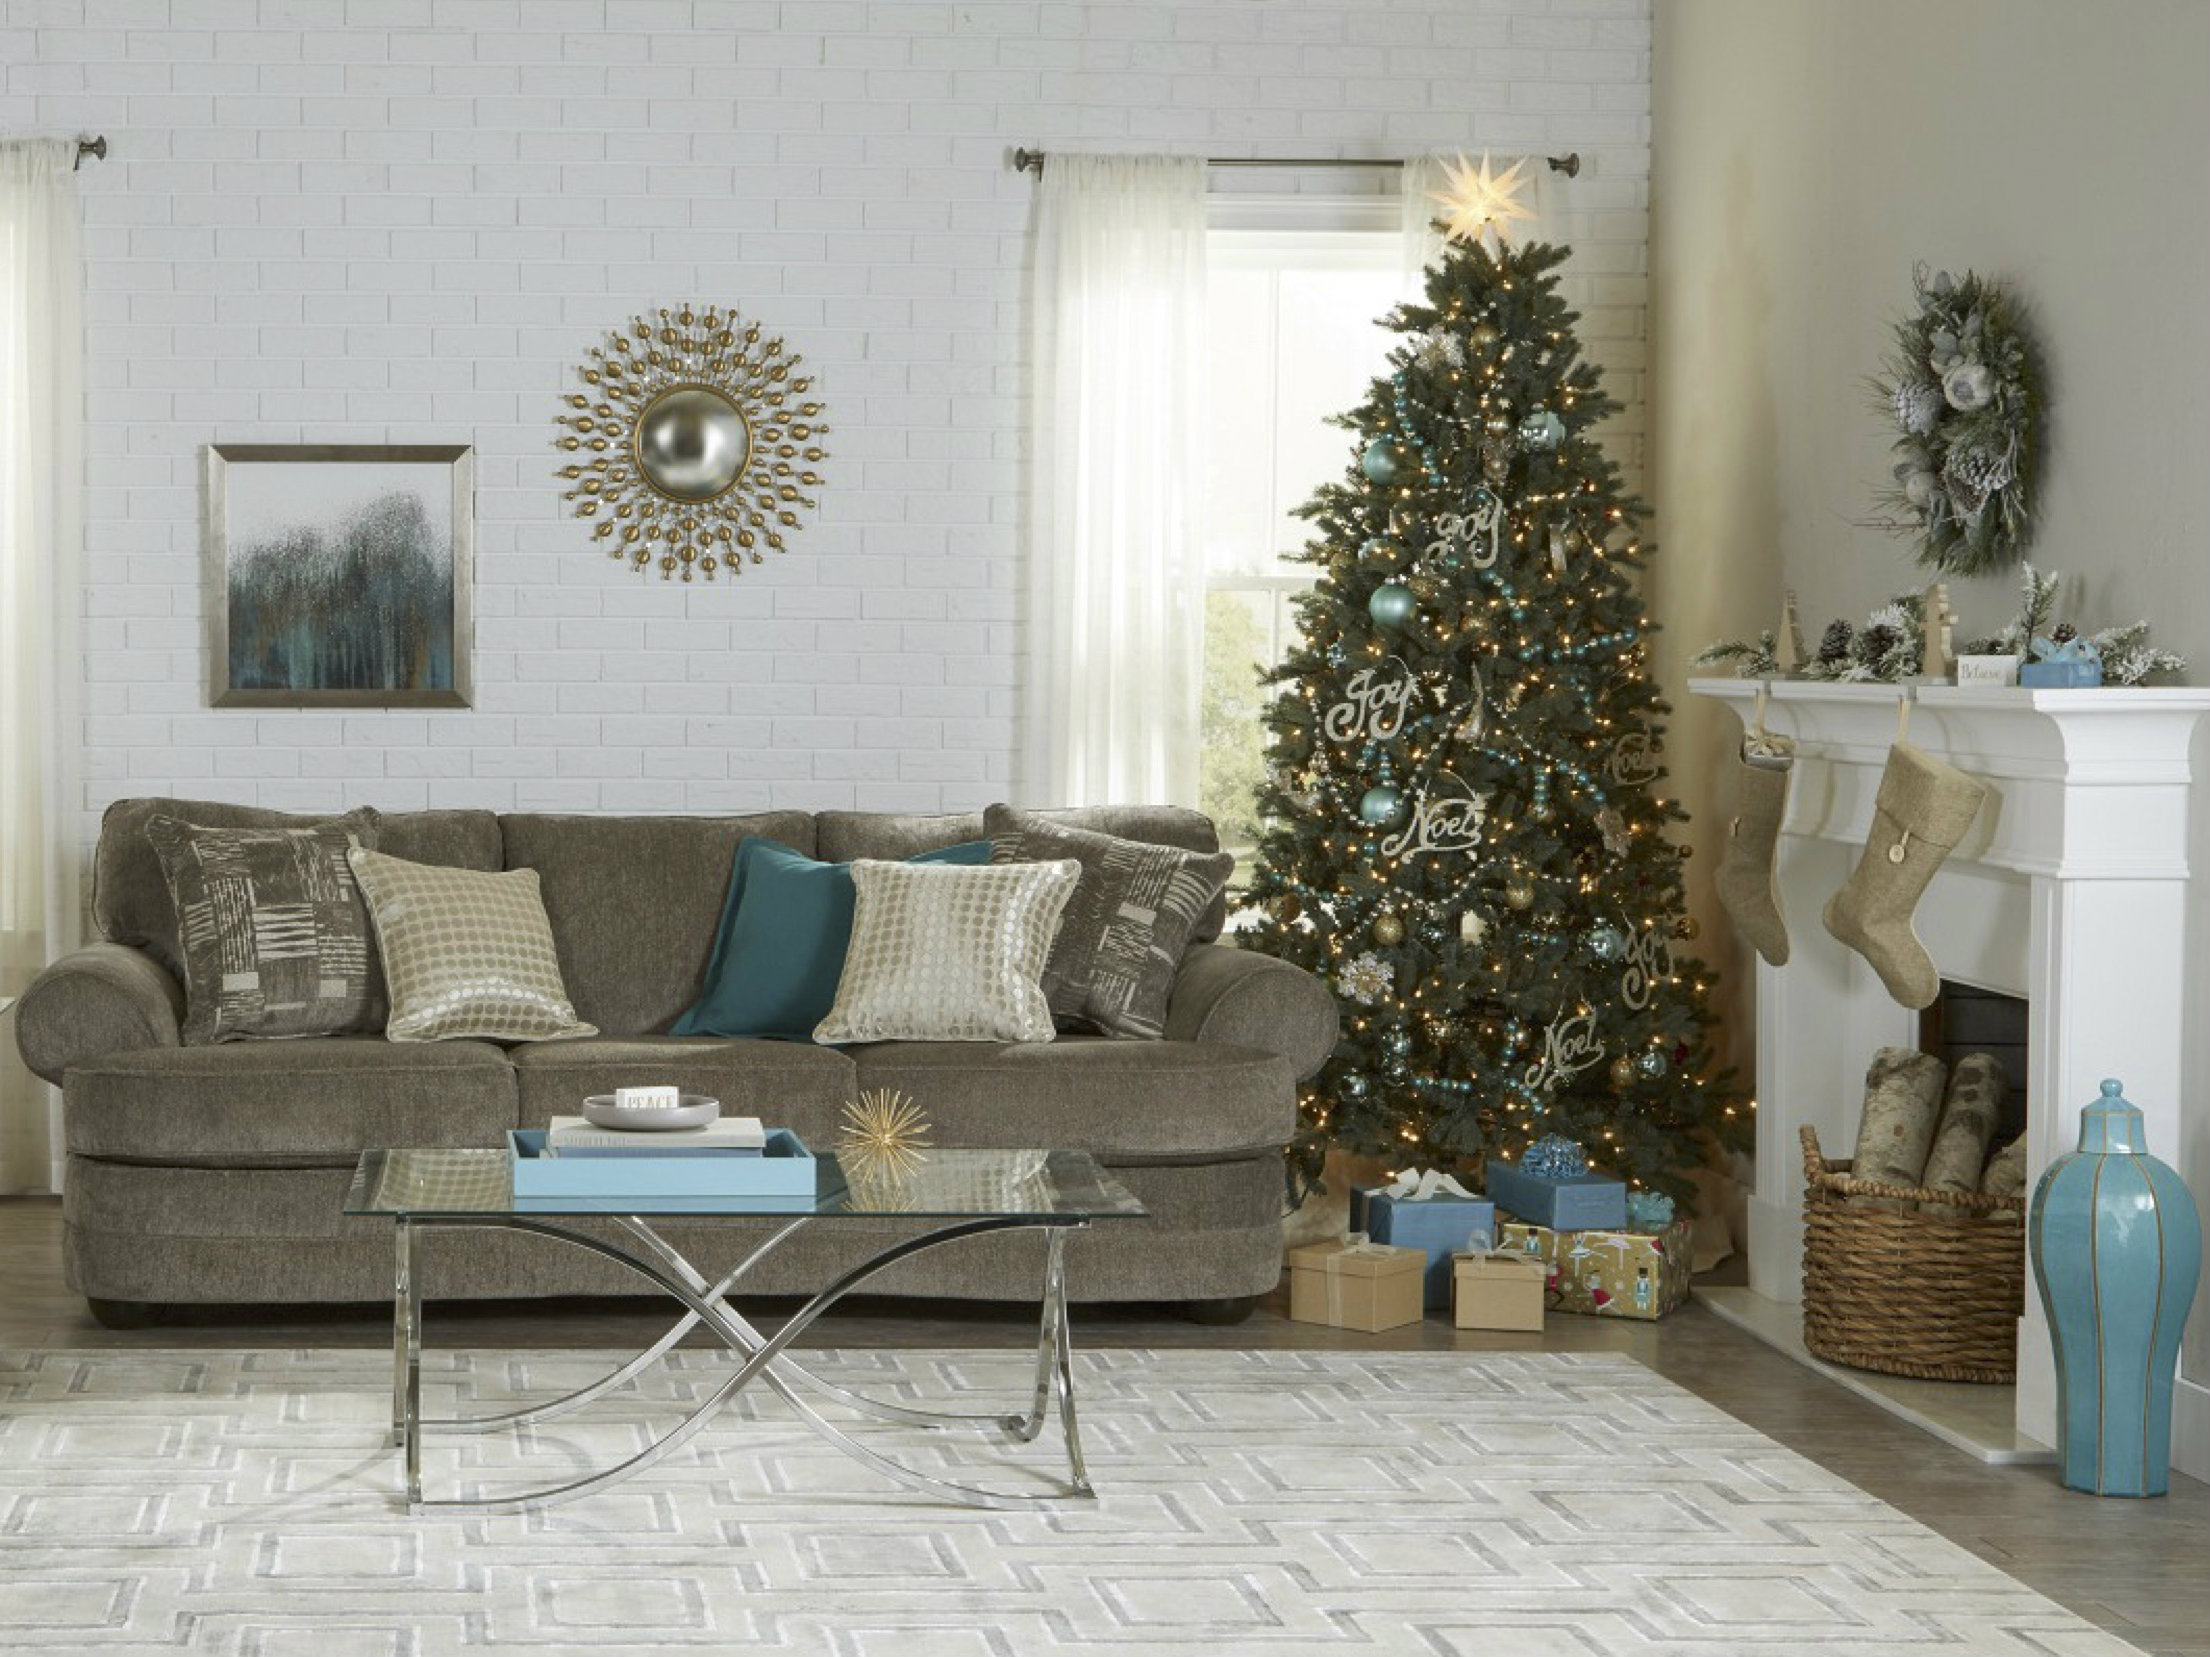 Living room decorated for the holidays with a festive Christmas tree